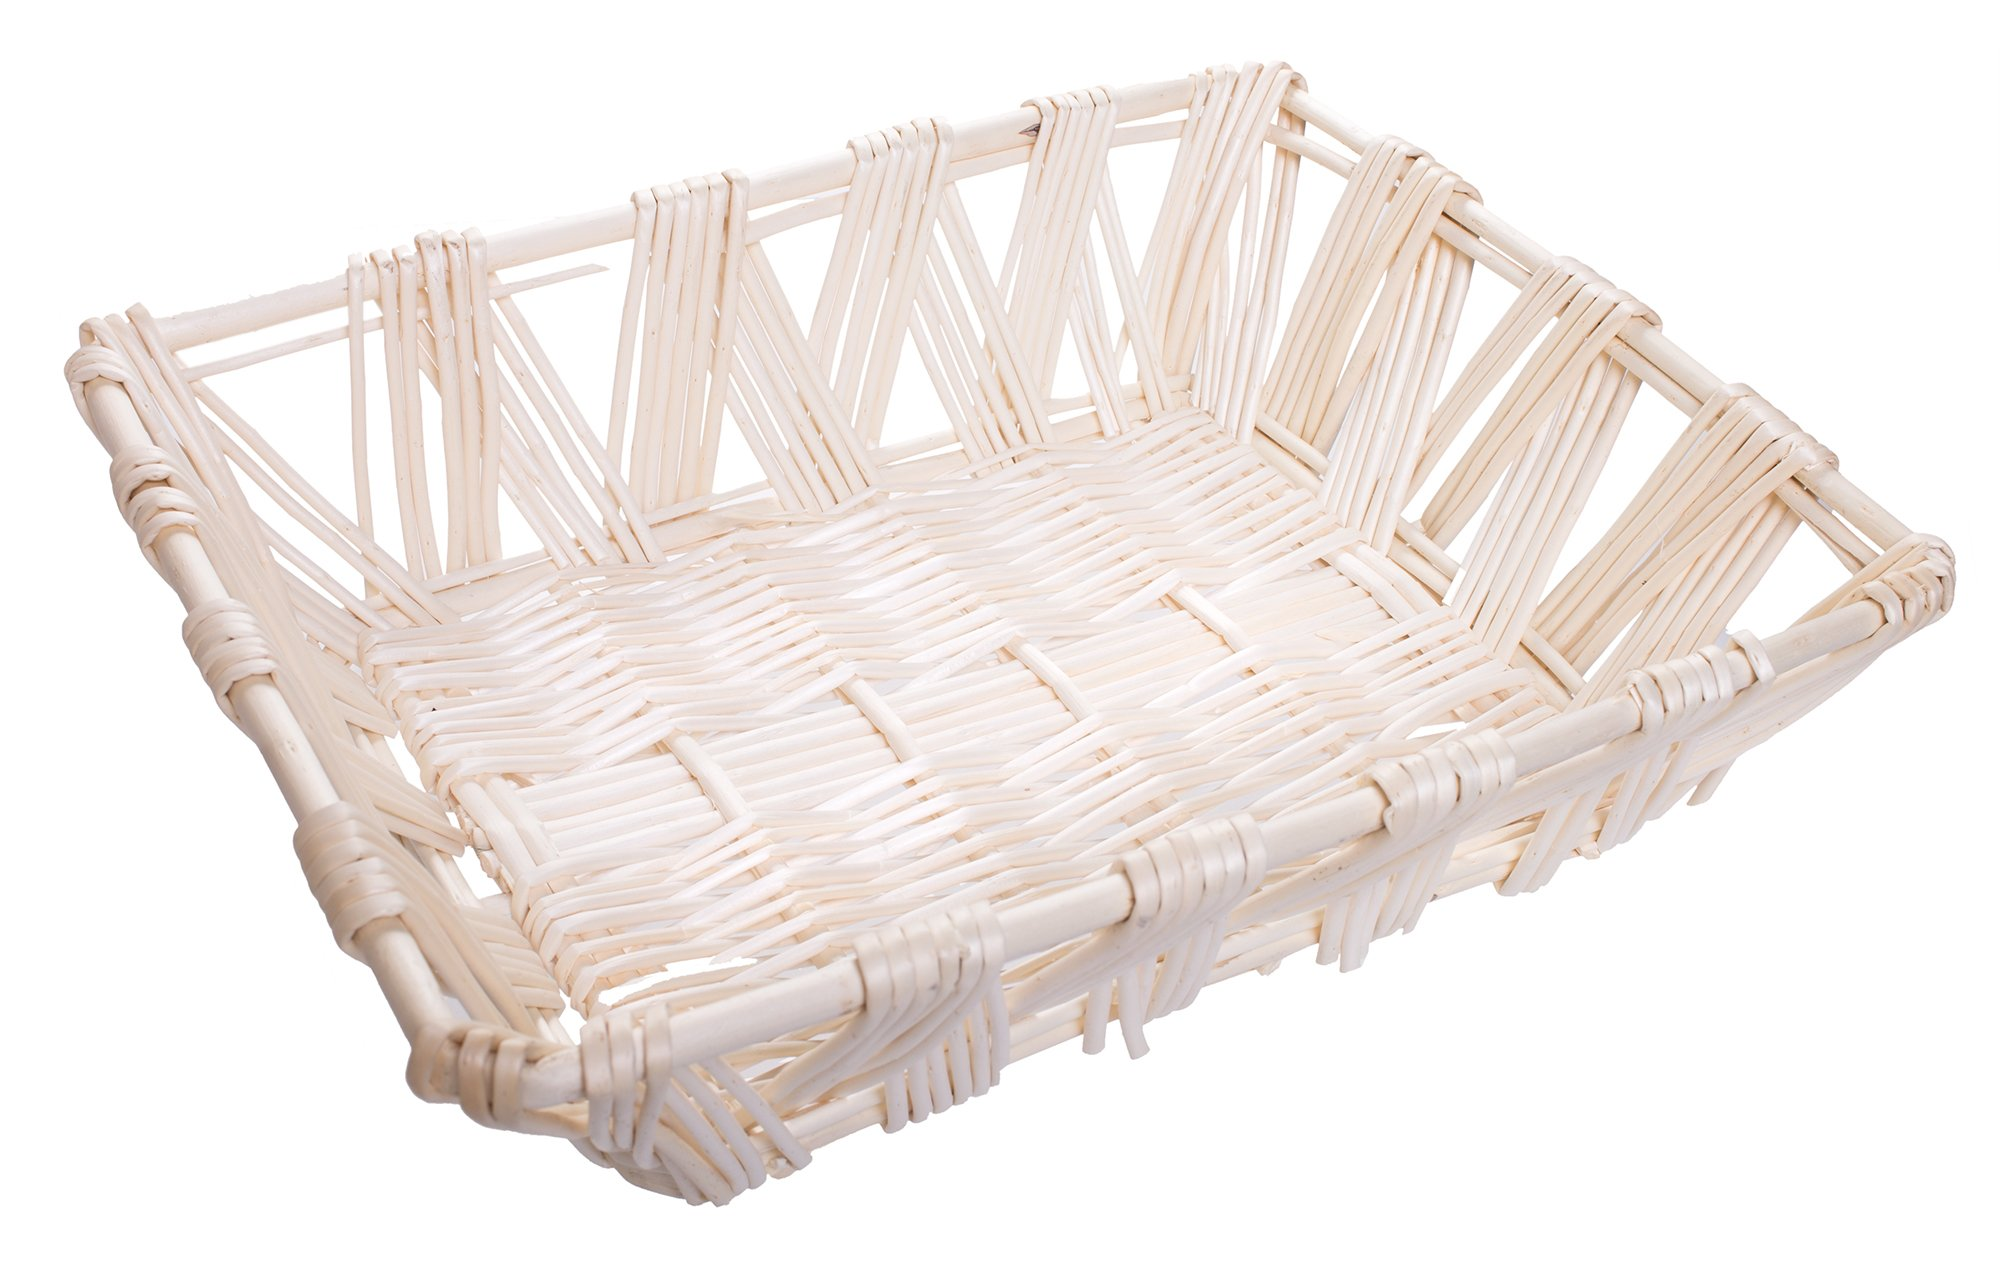 Willow Storage File Tray in White Finish - 15 x 12 x 4.5 Inches